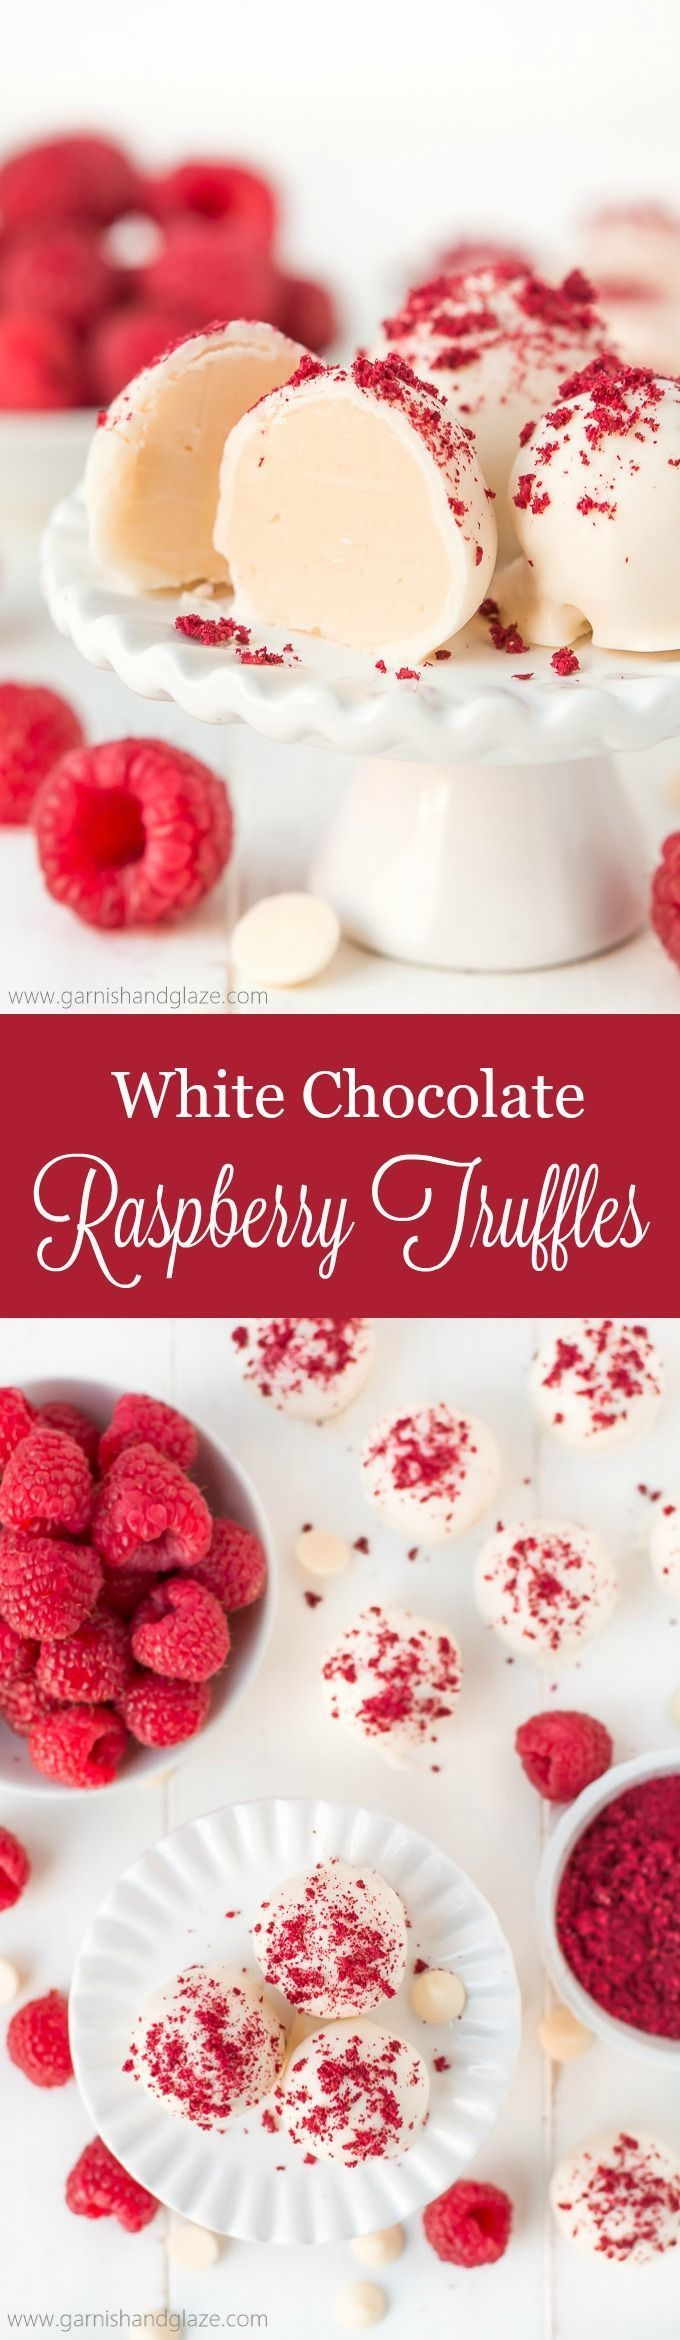 With just 5 ingredients, make the most amazing melt-in-your-mouth White Chocolate Raspberry Truffles to delight in this holiday season. @InDelight #HolidayDelight #IDelight